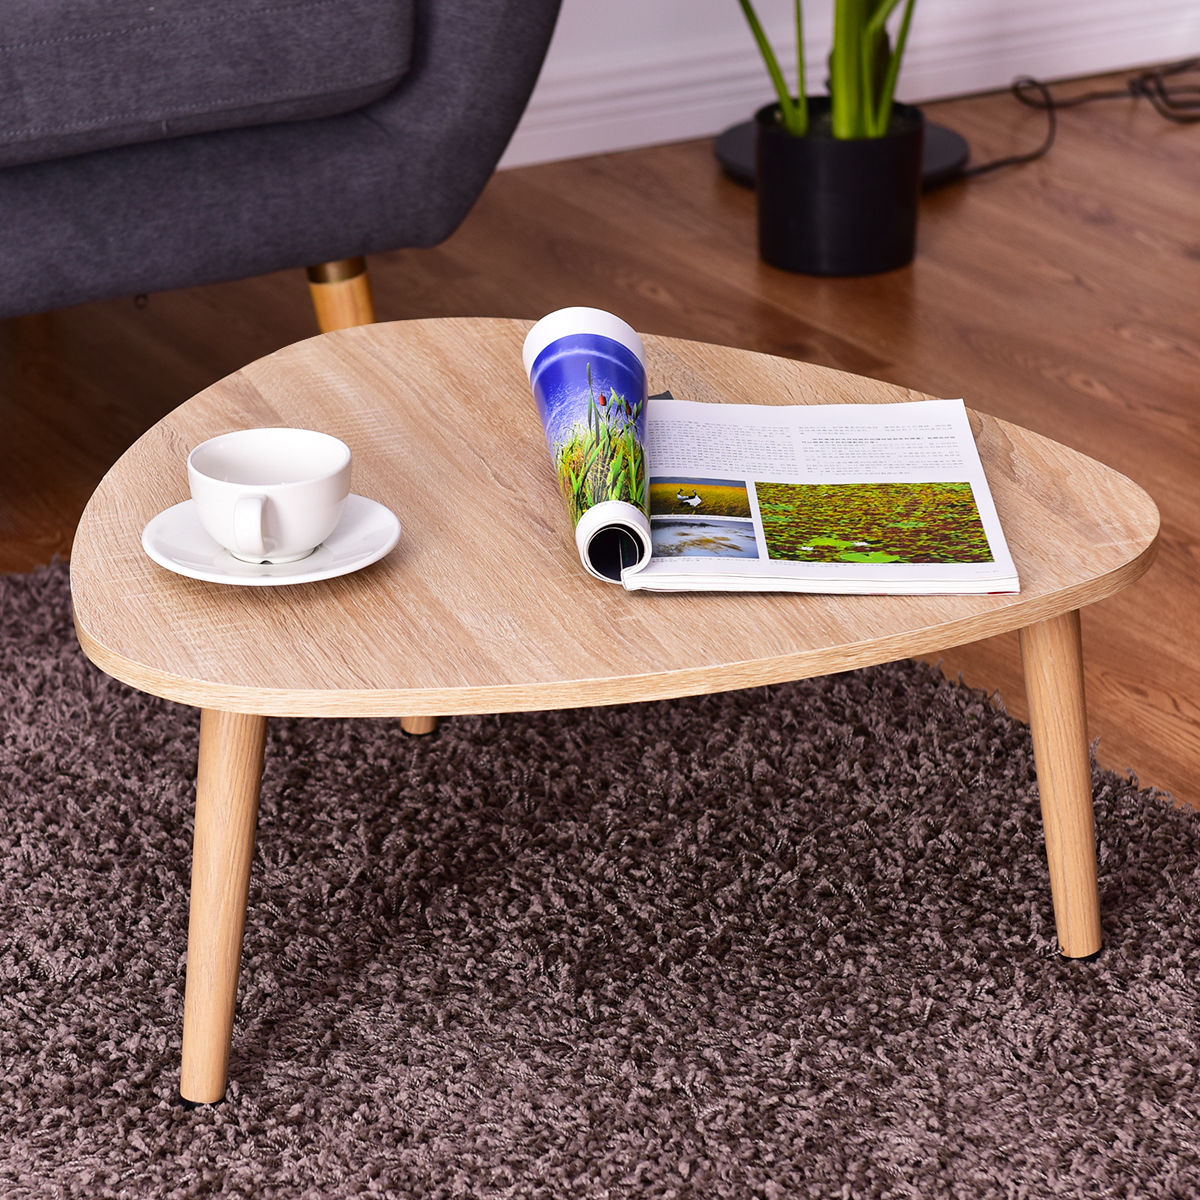 way triangle top coffee table sofa side end accent living room essentials stacking furniture chestnut bedside tiny round shaped tipton handmade wood tables small farmhouse navy